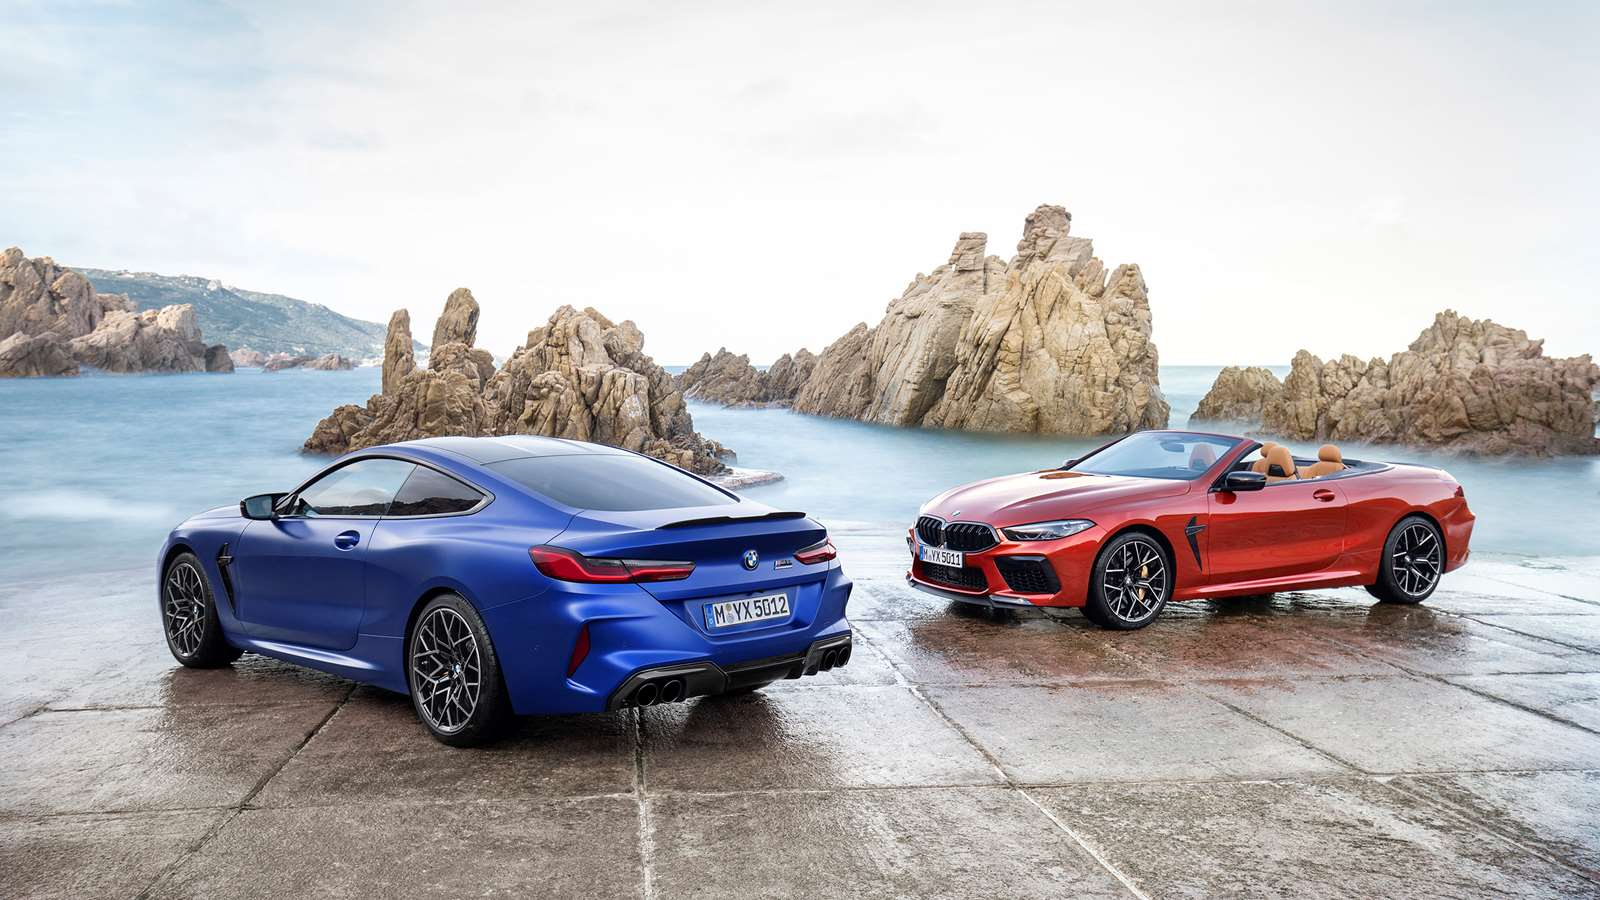 Bmw Launches M8 Competition Coupe And M8 Competition Convertible